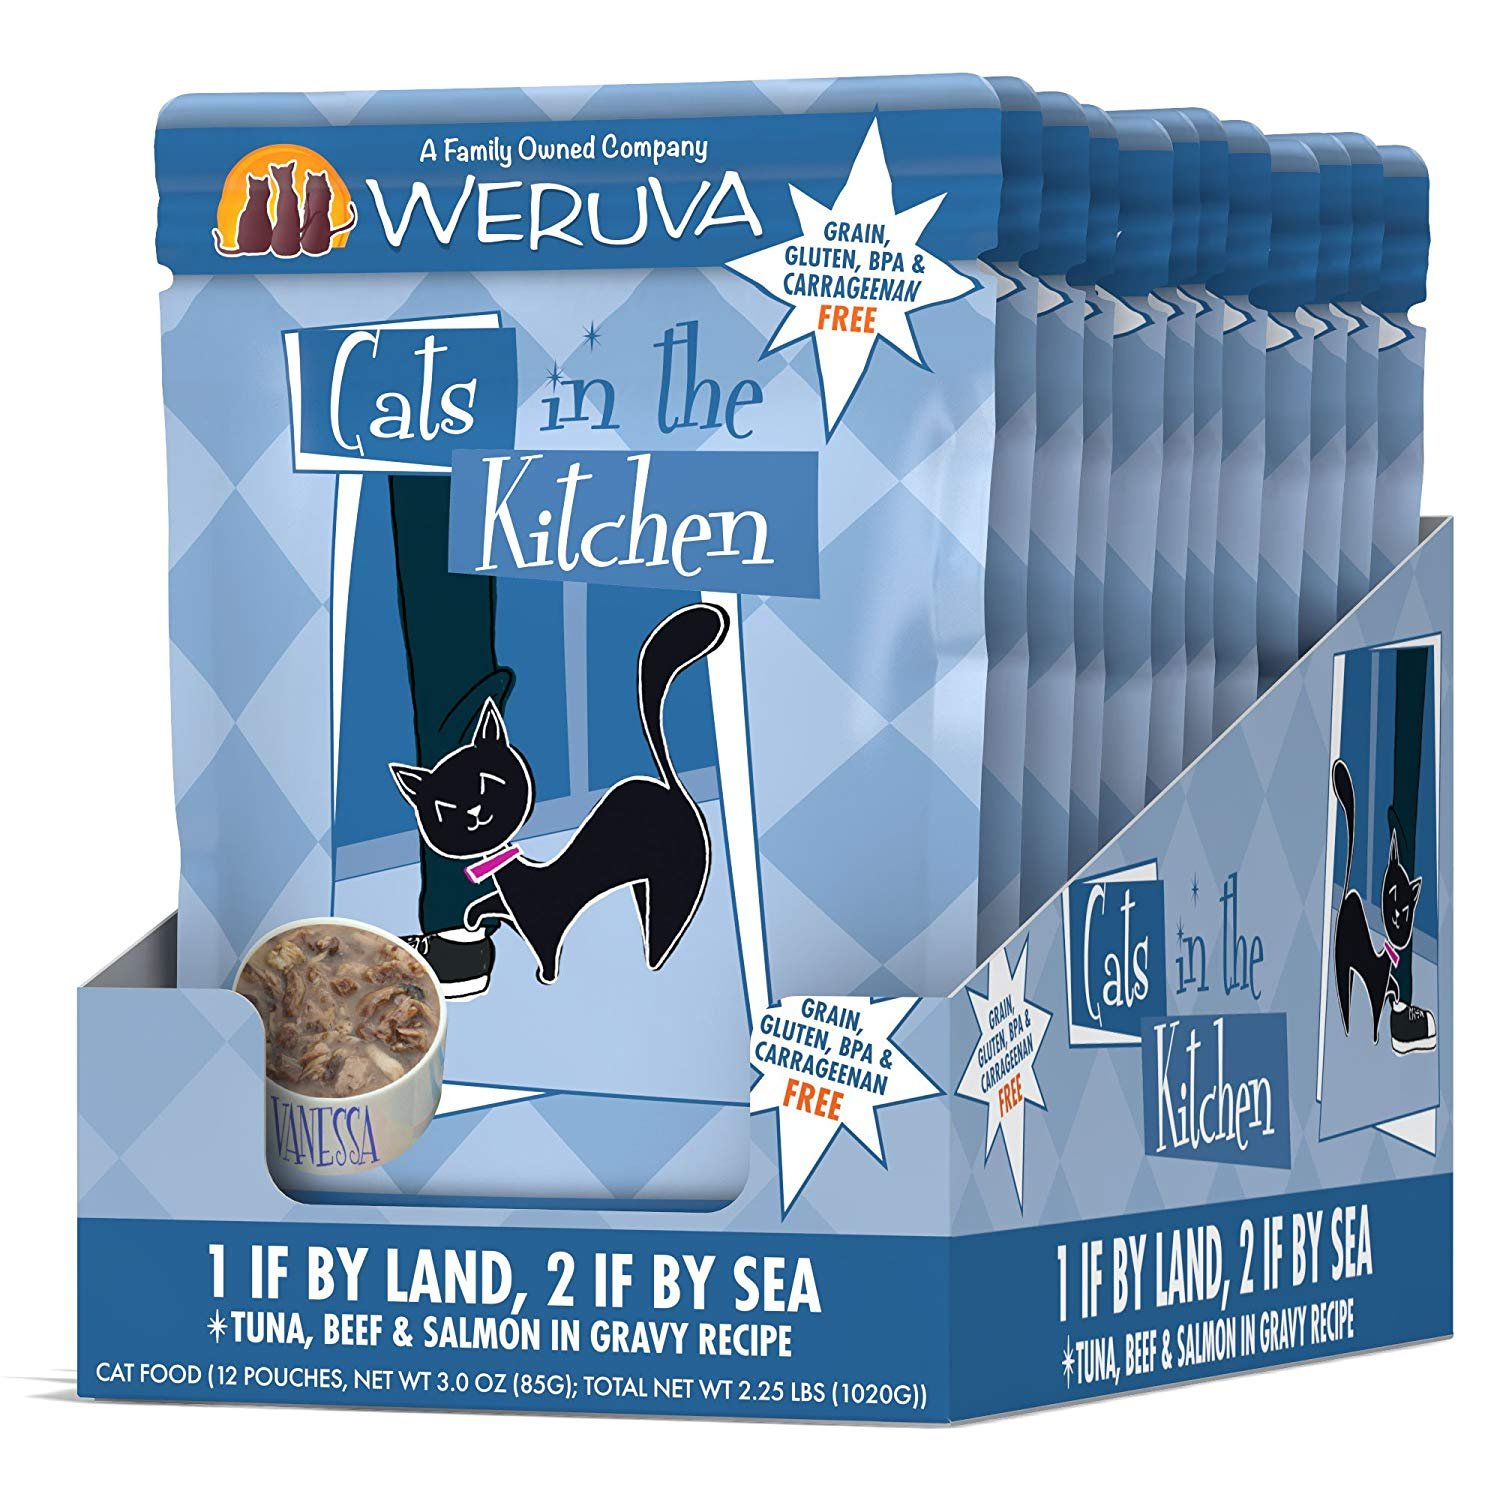 Amazon.com : Weruva Cats in the Kitchen, 1 if By Land, 2 if By Sea ...